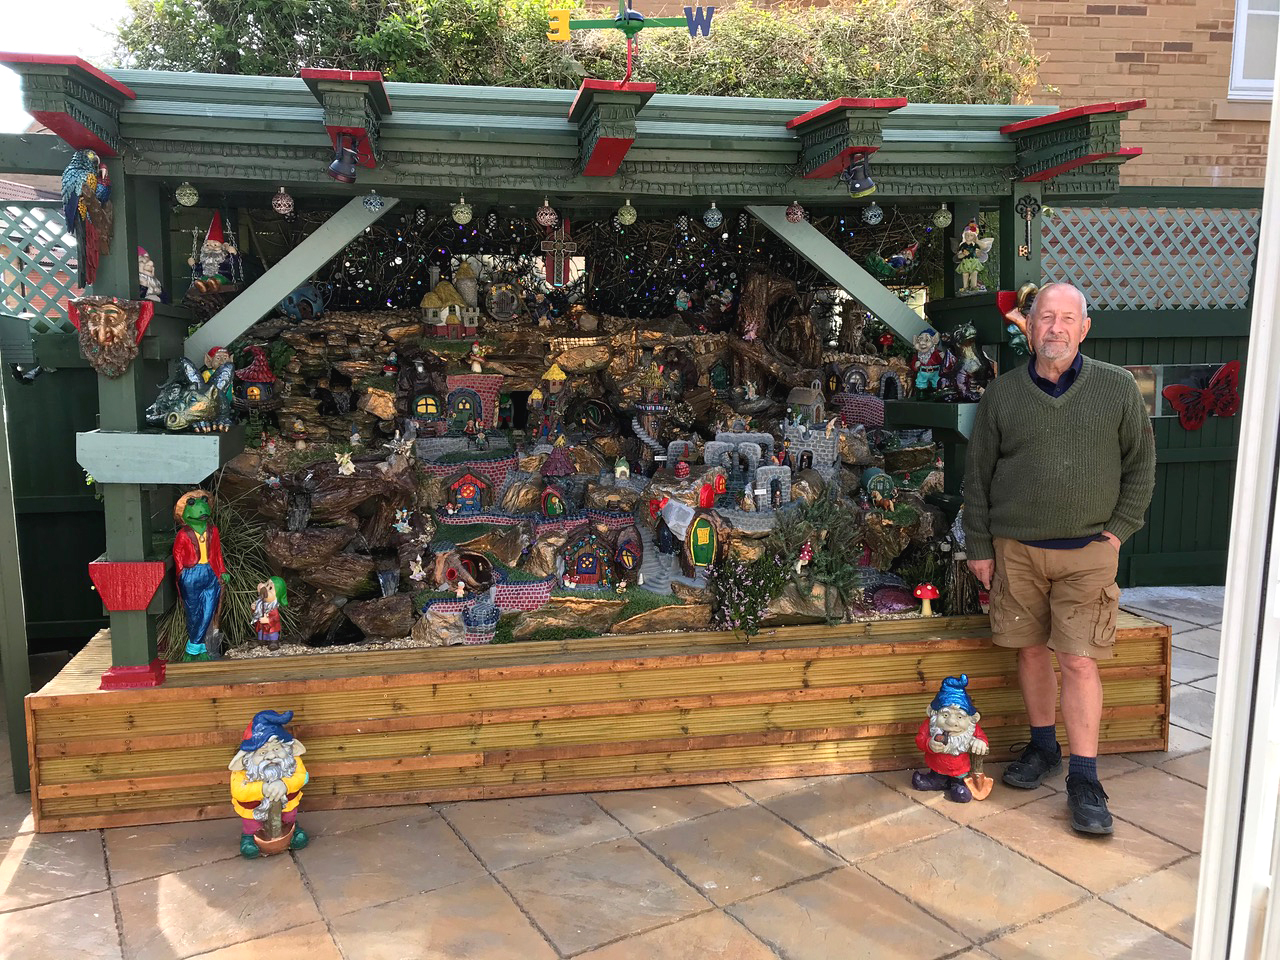 Ron Smith-Bishtopn with one of the exhibits in his fairy garden